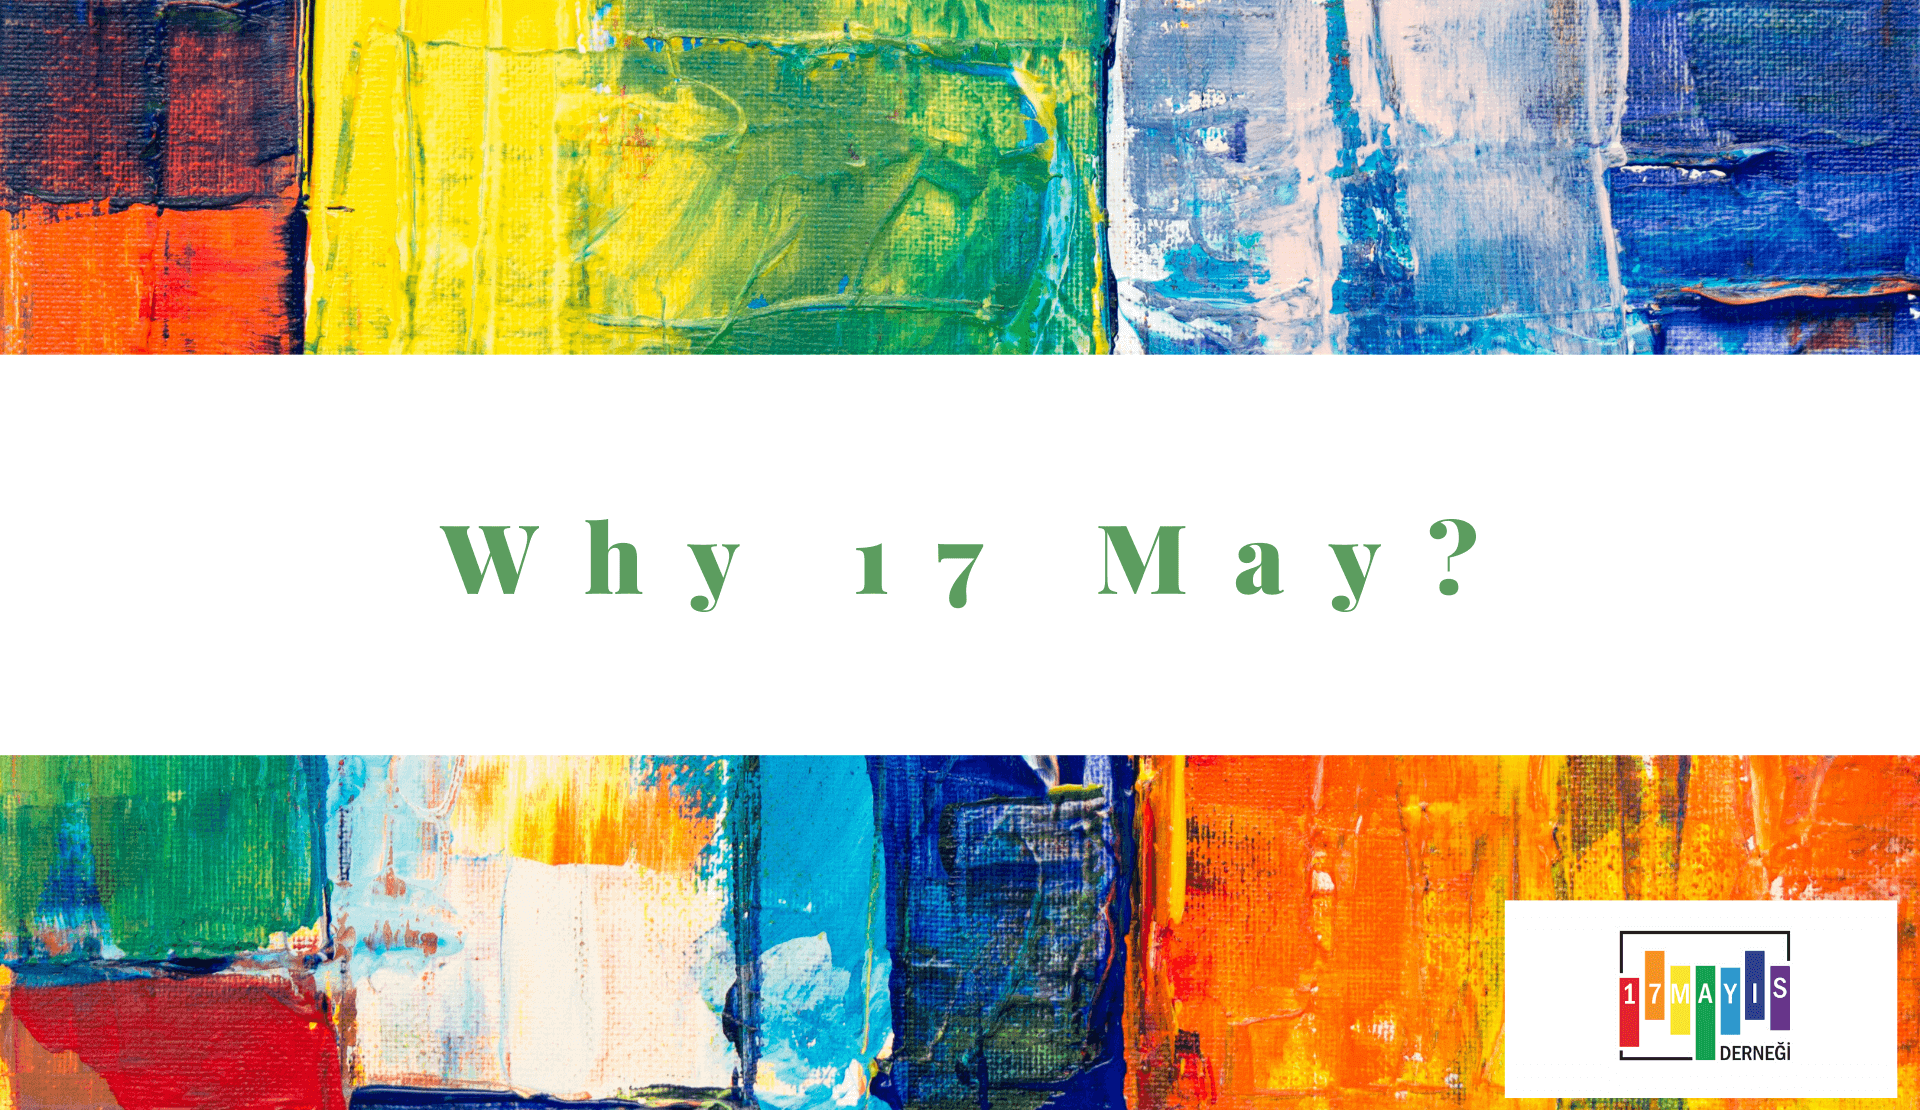 May 17 Association | Why 17 May?